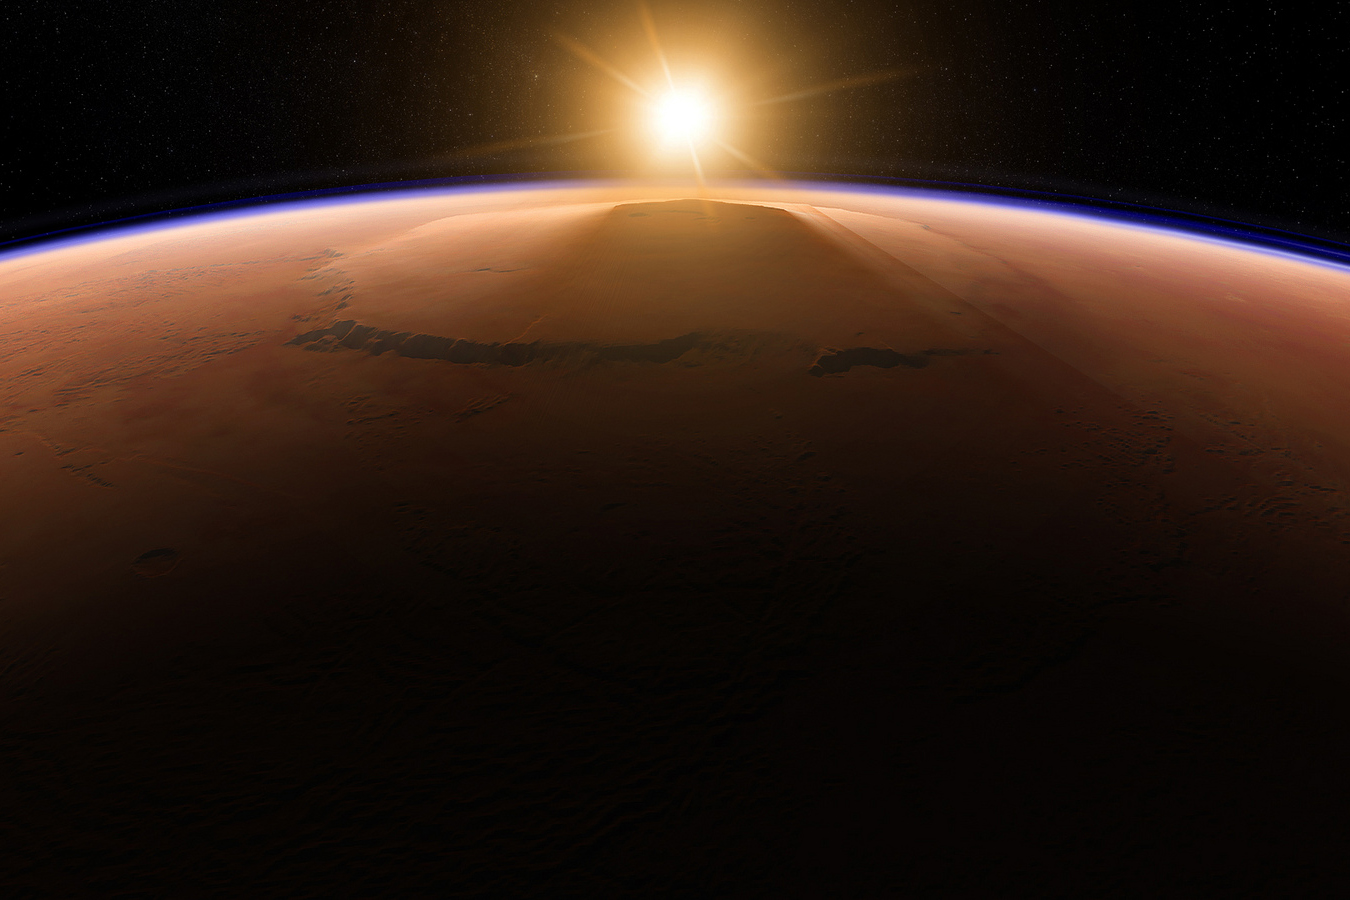 Sci-Fi Ascent: Firm Calls For Route Up Tallest Mountain On Mars